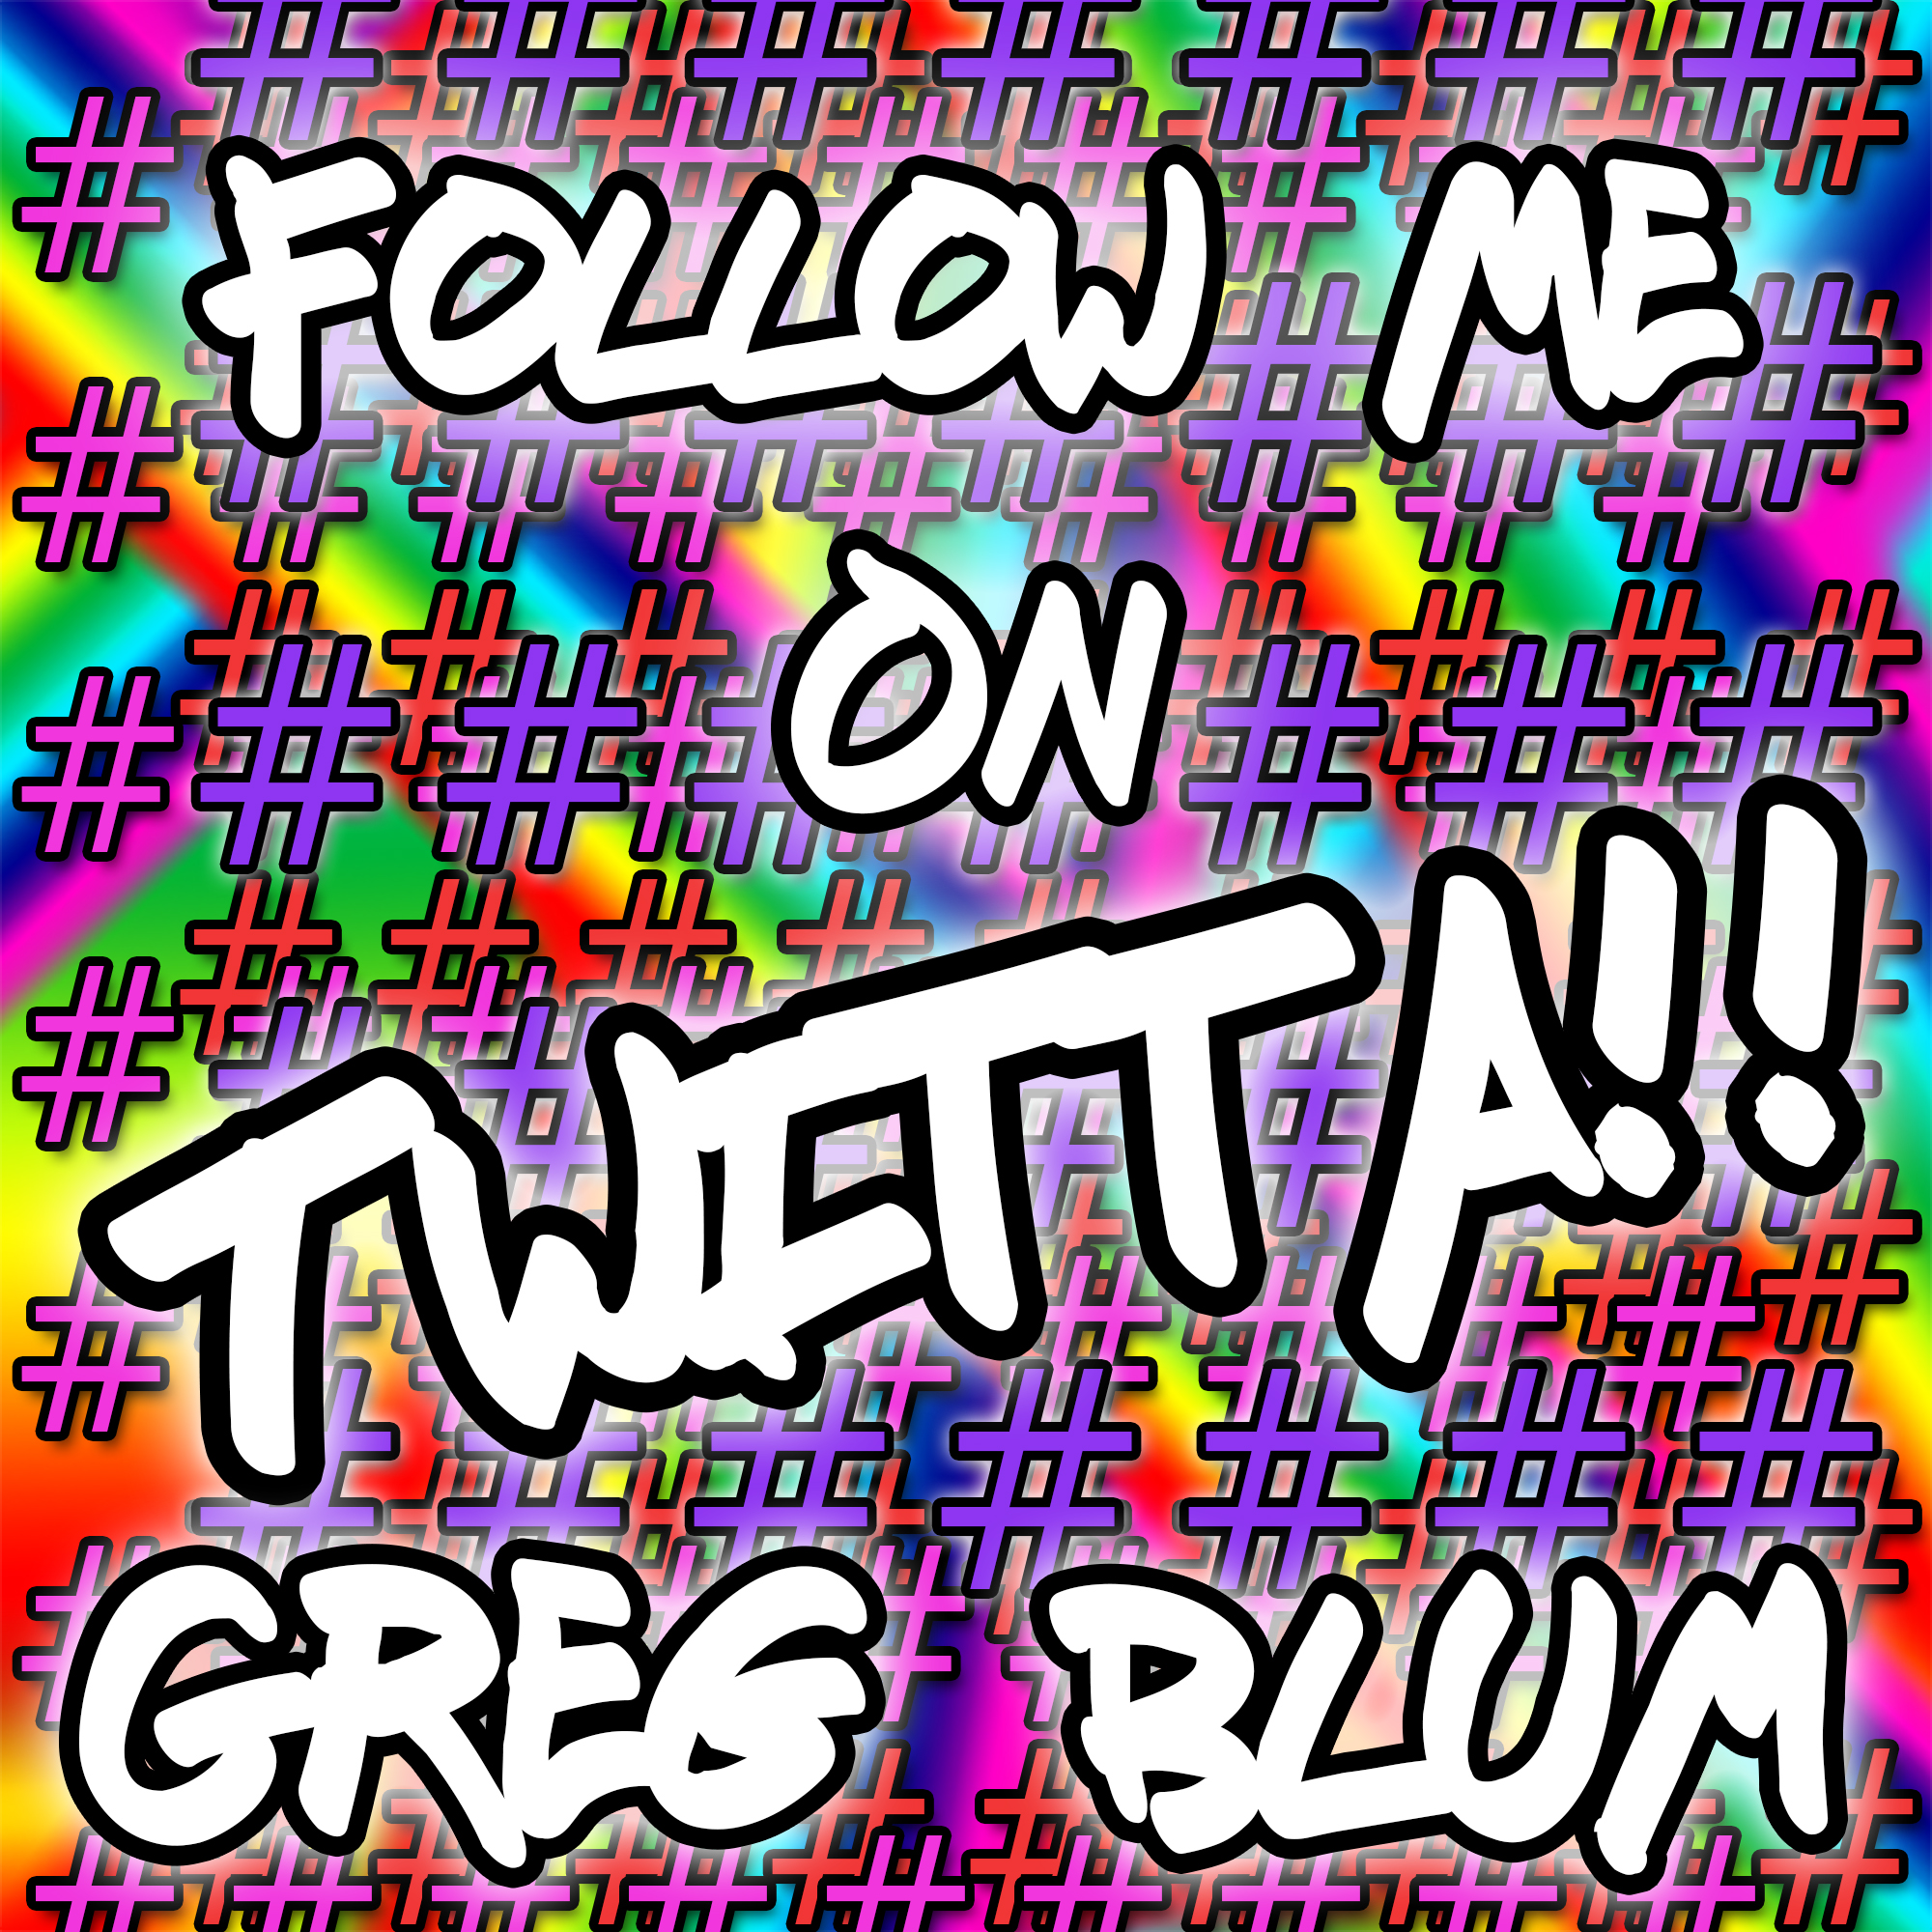 Follow Me On Twitta!! by Greg Blum